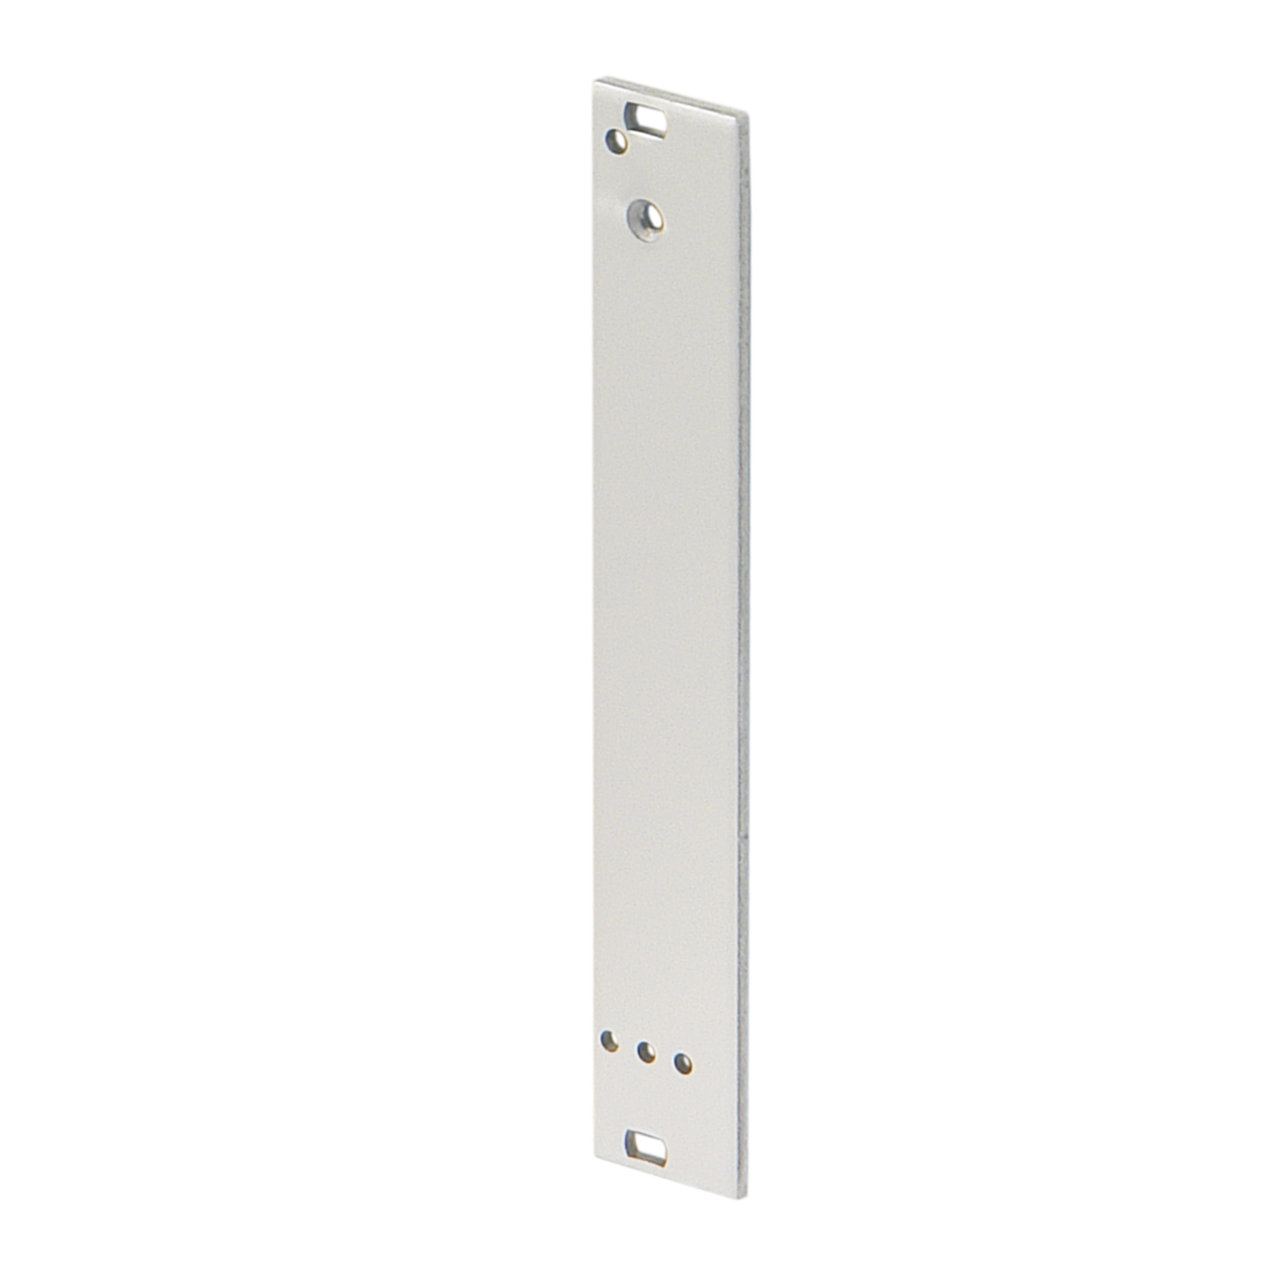 Image for Front panel, unshielded, front assembly, for static trapezoid or Al profile handle from Schroff | Europe, Middle East, Africa and India